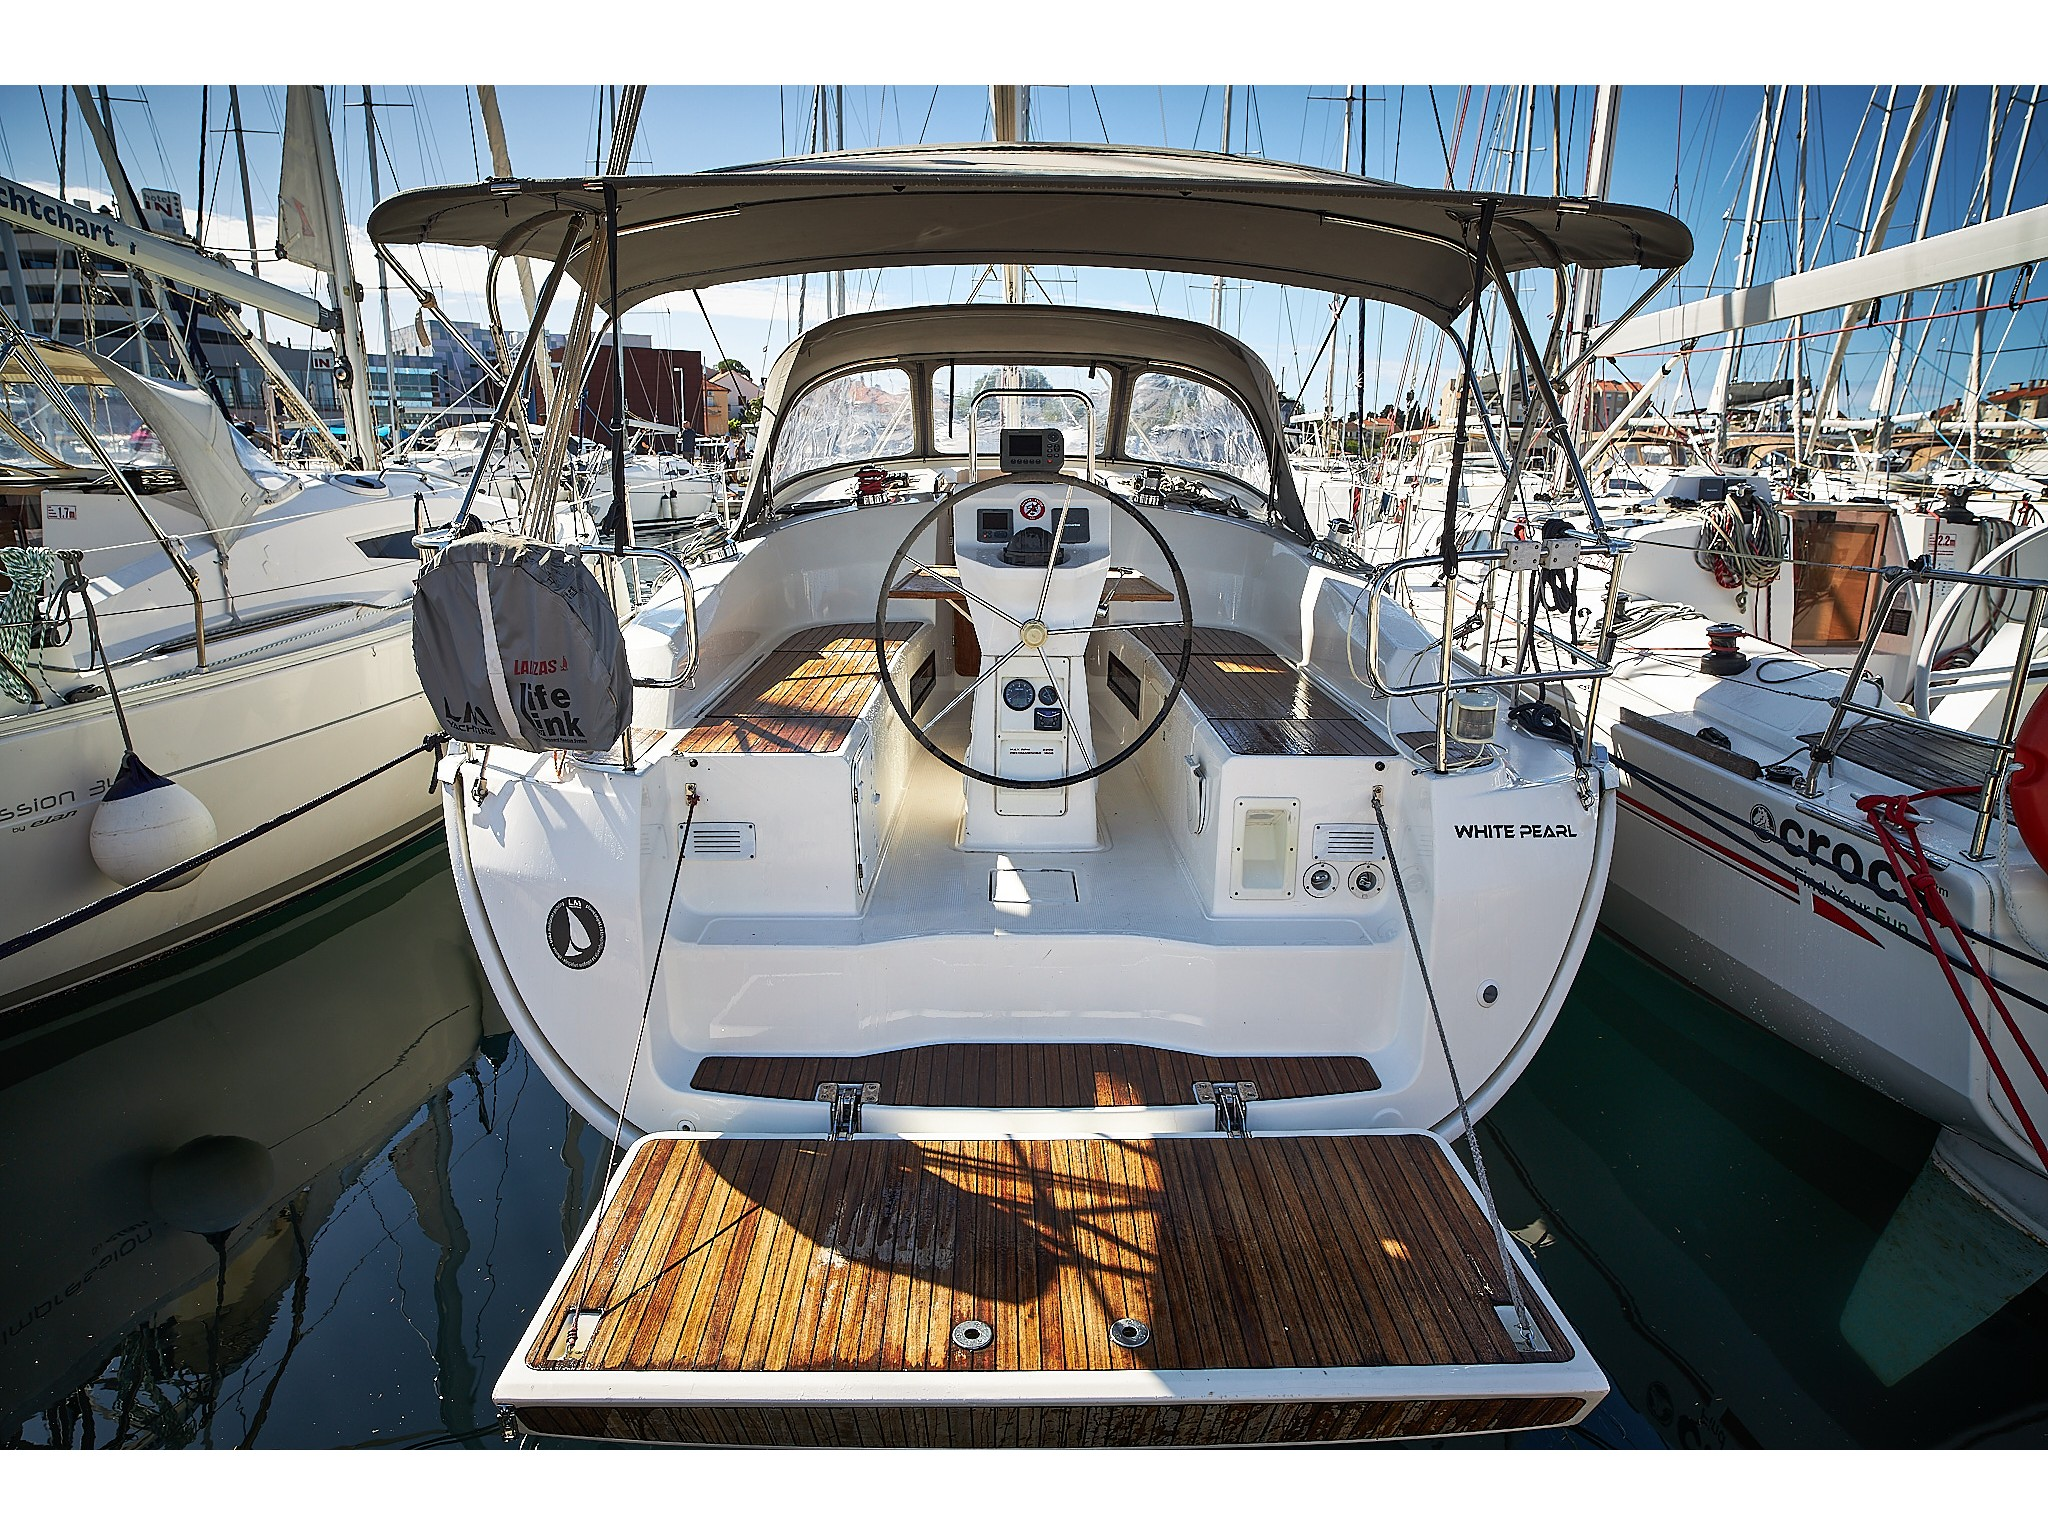 White pearl Bavaria 36 Cruiser